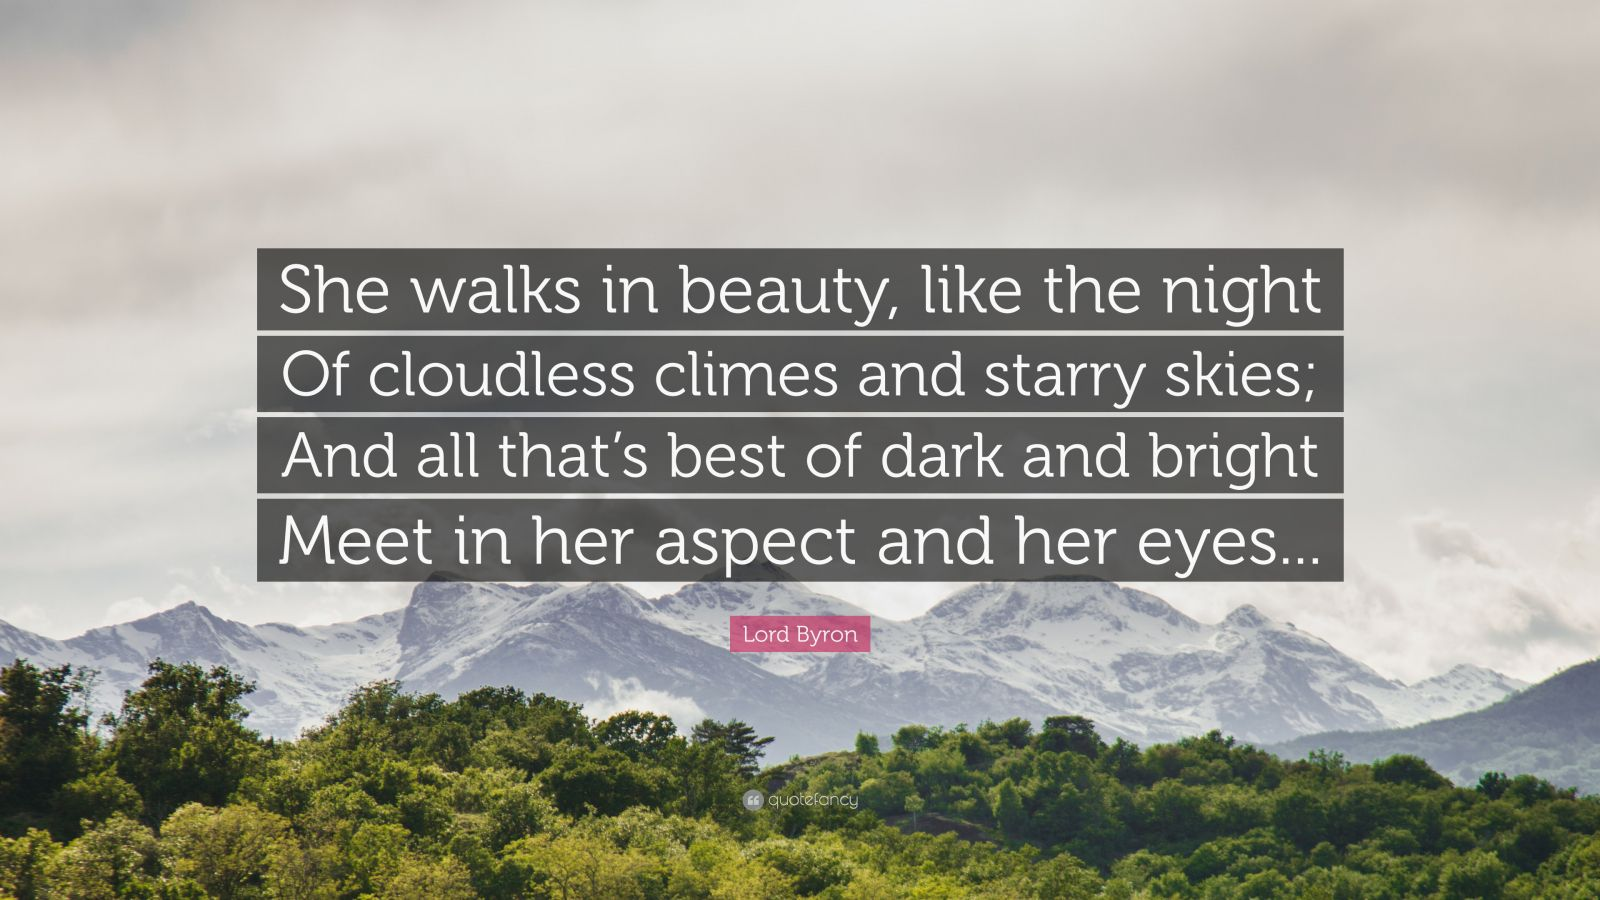 """an analysis of lord byrons she walks in beauty like the night In """"she walks in beauty, like the night,"""" lord byron describes the theme of love, beauty, and nature, implying that the more humans come in contact with nature, the more beautiful they become he describes nature as magnificent, and implies that our nature-like qualities make us."""